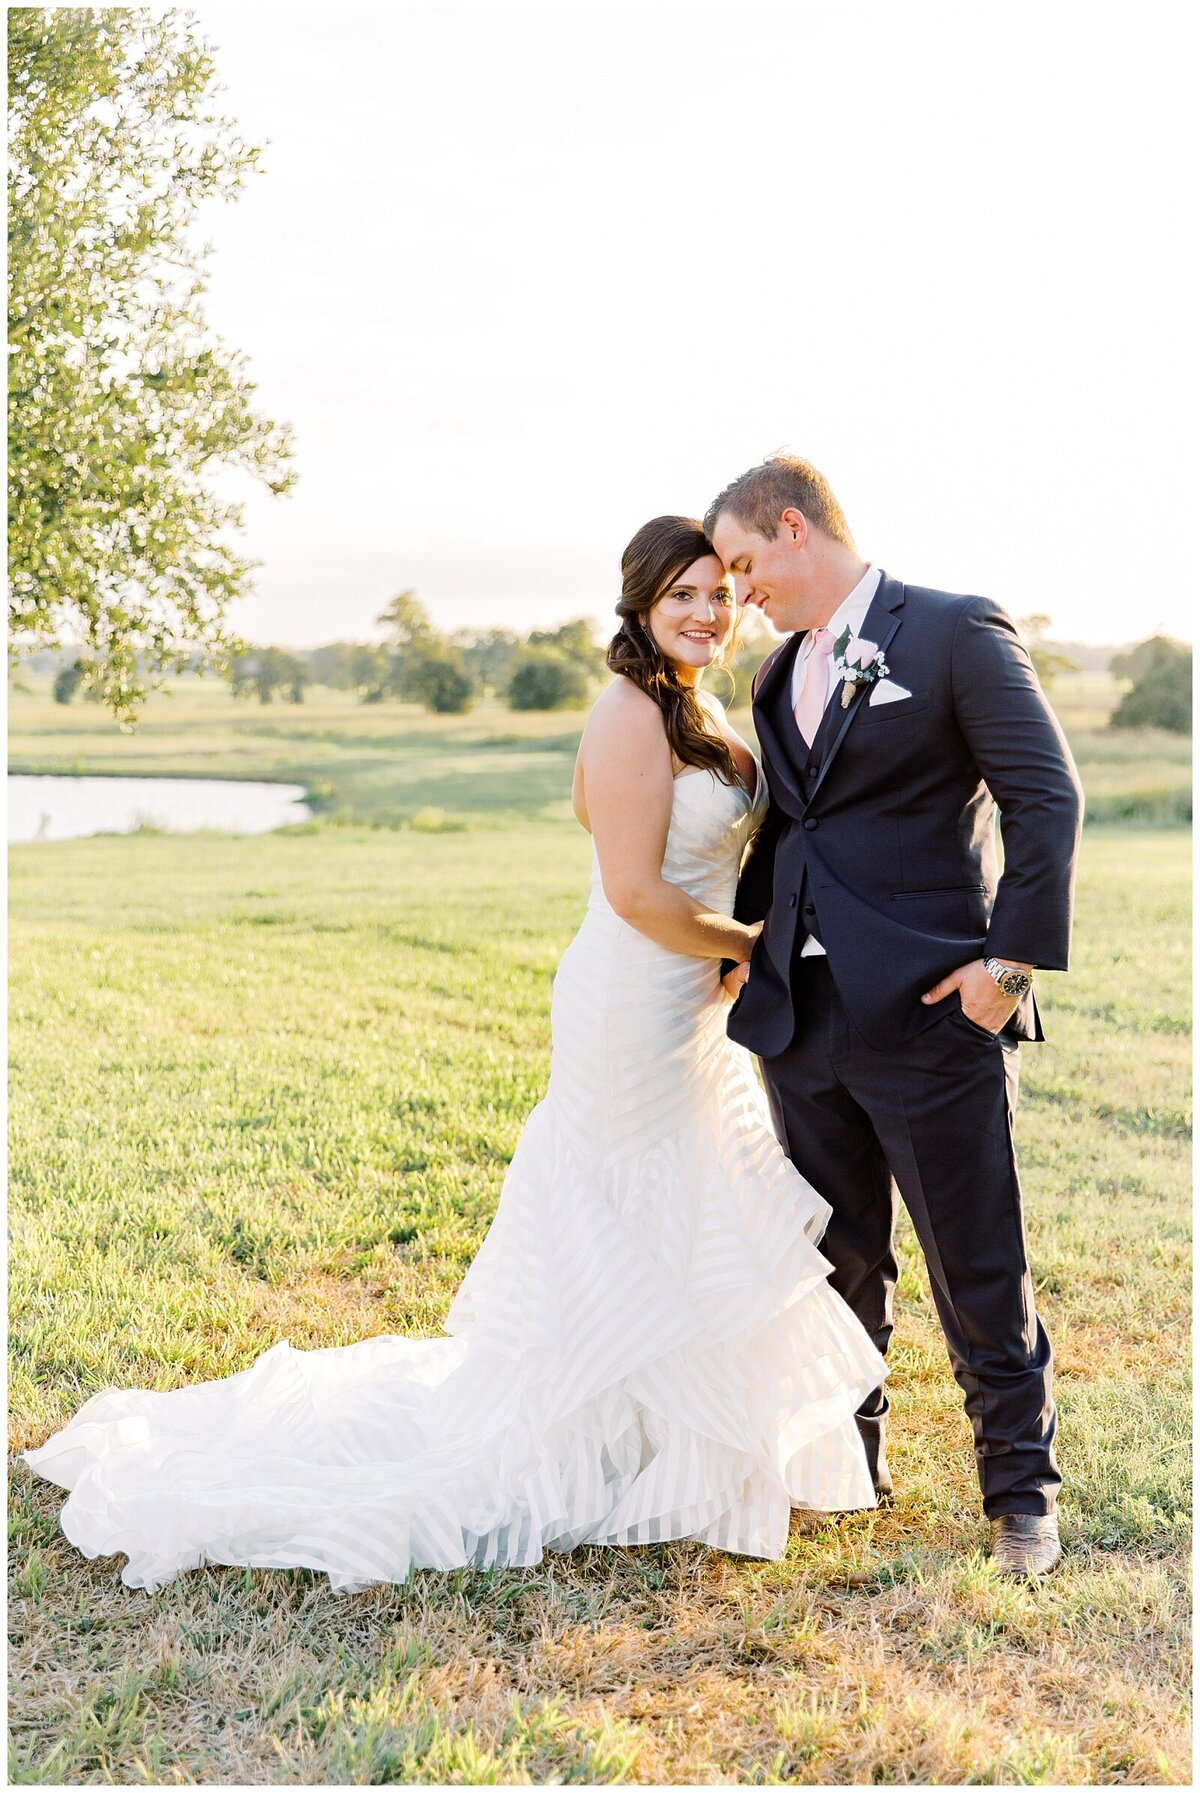 Vintage Inspired Wedding at Emery's Buffalo Creek - Houston Wedding Venue_0740